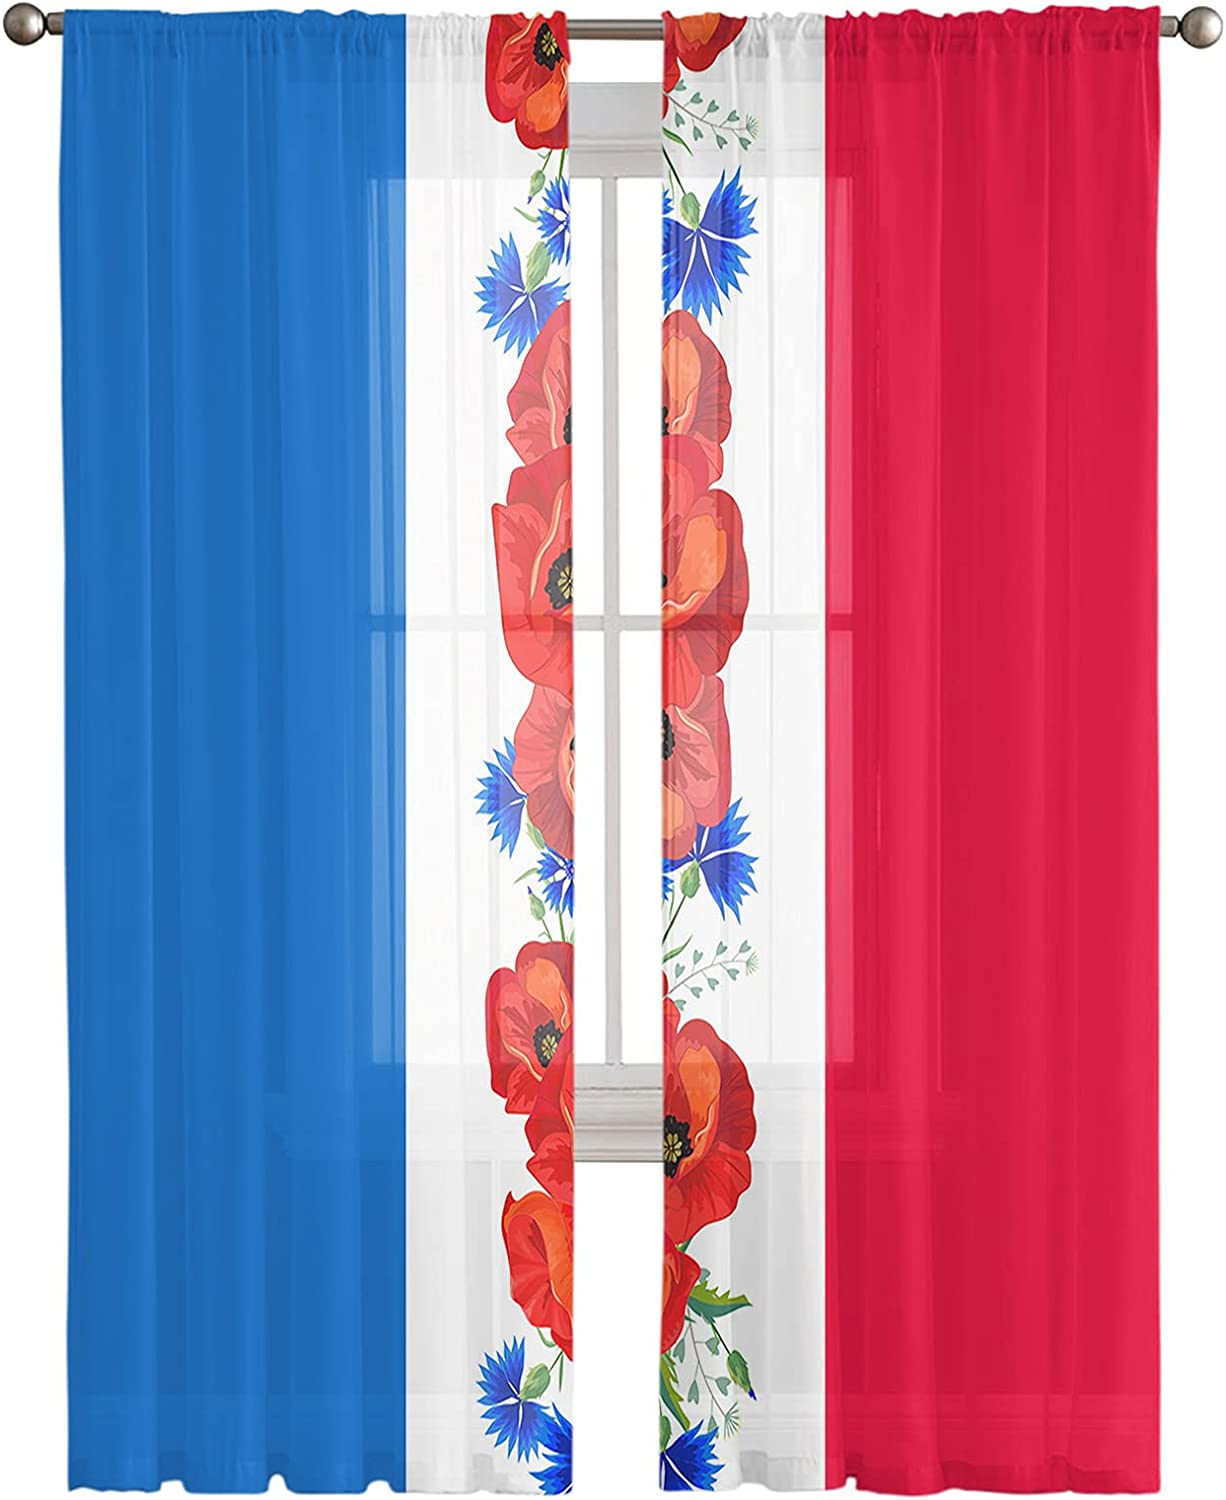 Voile Sheer Curtains 84inch Limited price Long 2 Rod US Poppies Max 87% OFF Flag Po Panels